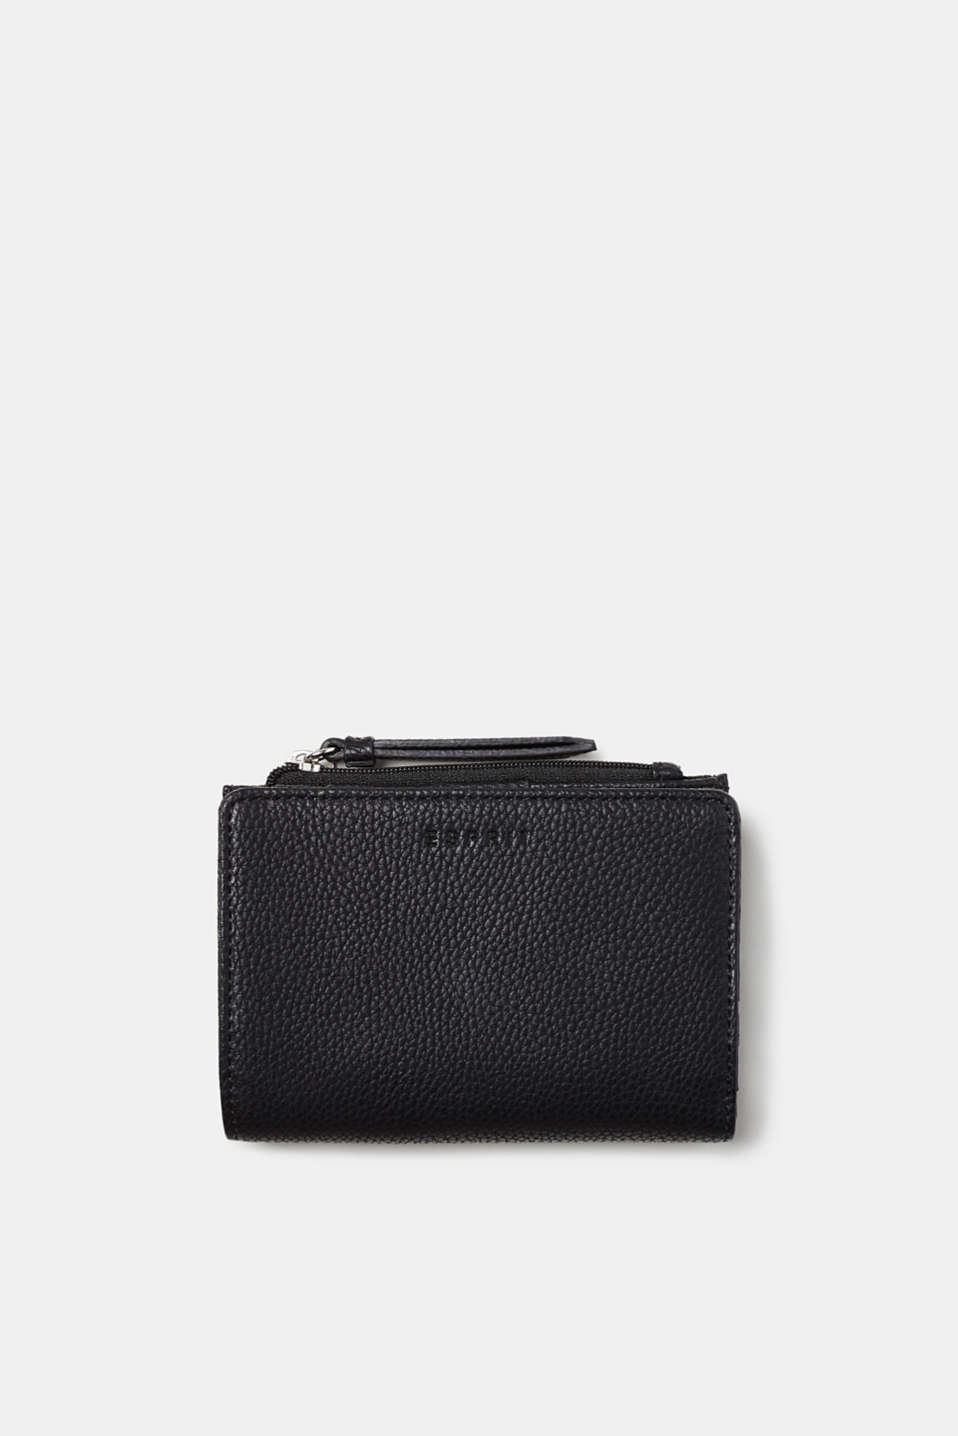 A compact format and enough room for all of your essentials: compact purse in grained faux leather